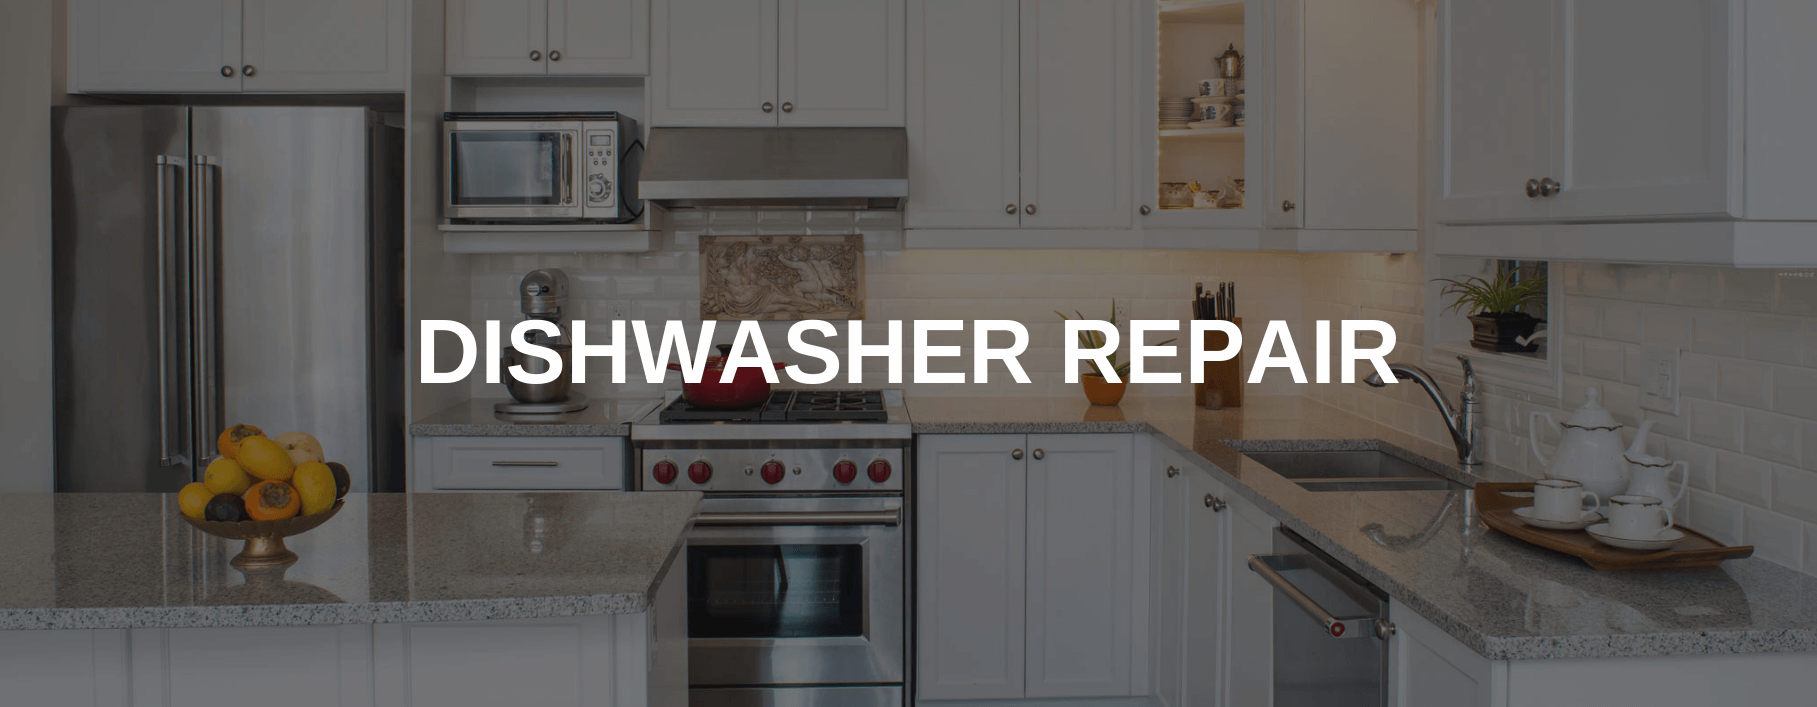 dishwasher repair reston